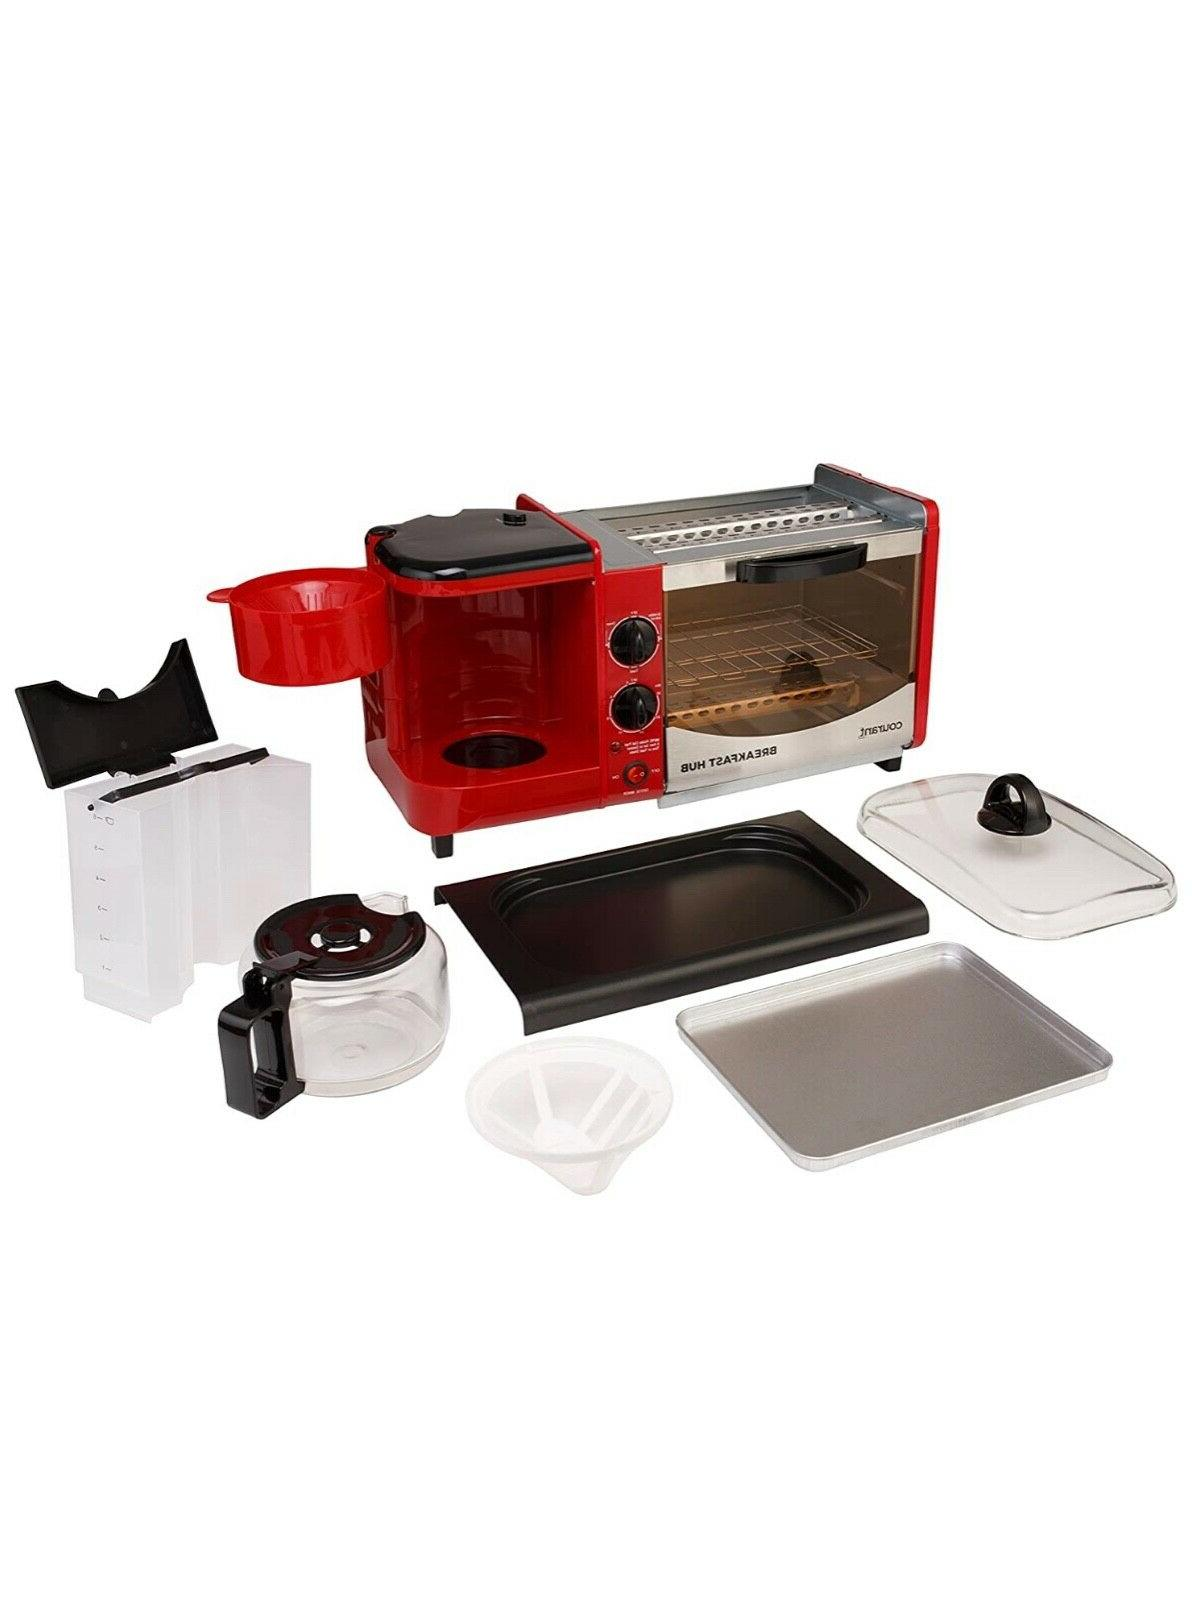 3-in-1 Multifunction Breakfast toaster oven, griddle pan, coffee maker